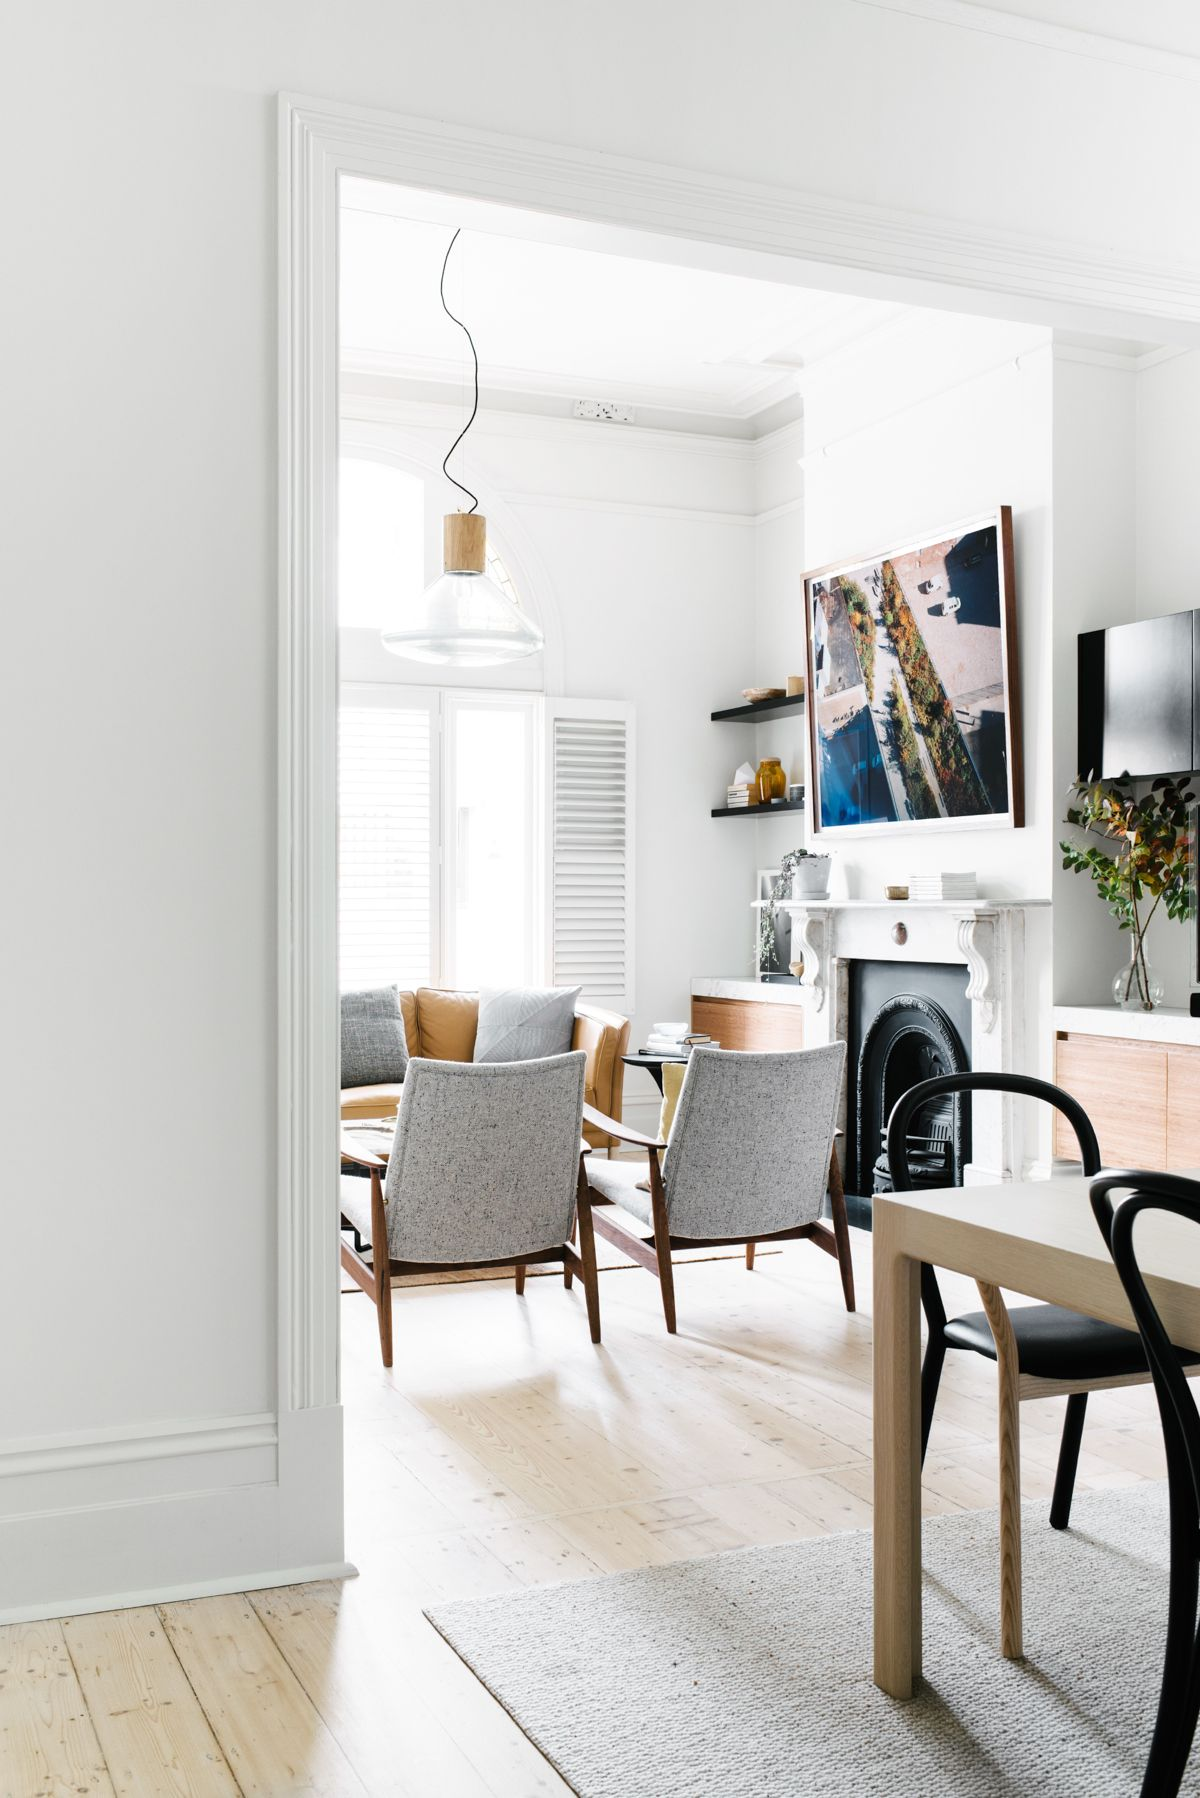 A Scandinavian inspired renovation has transformed this traditional